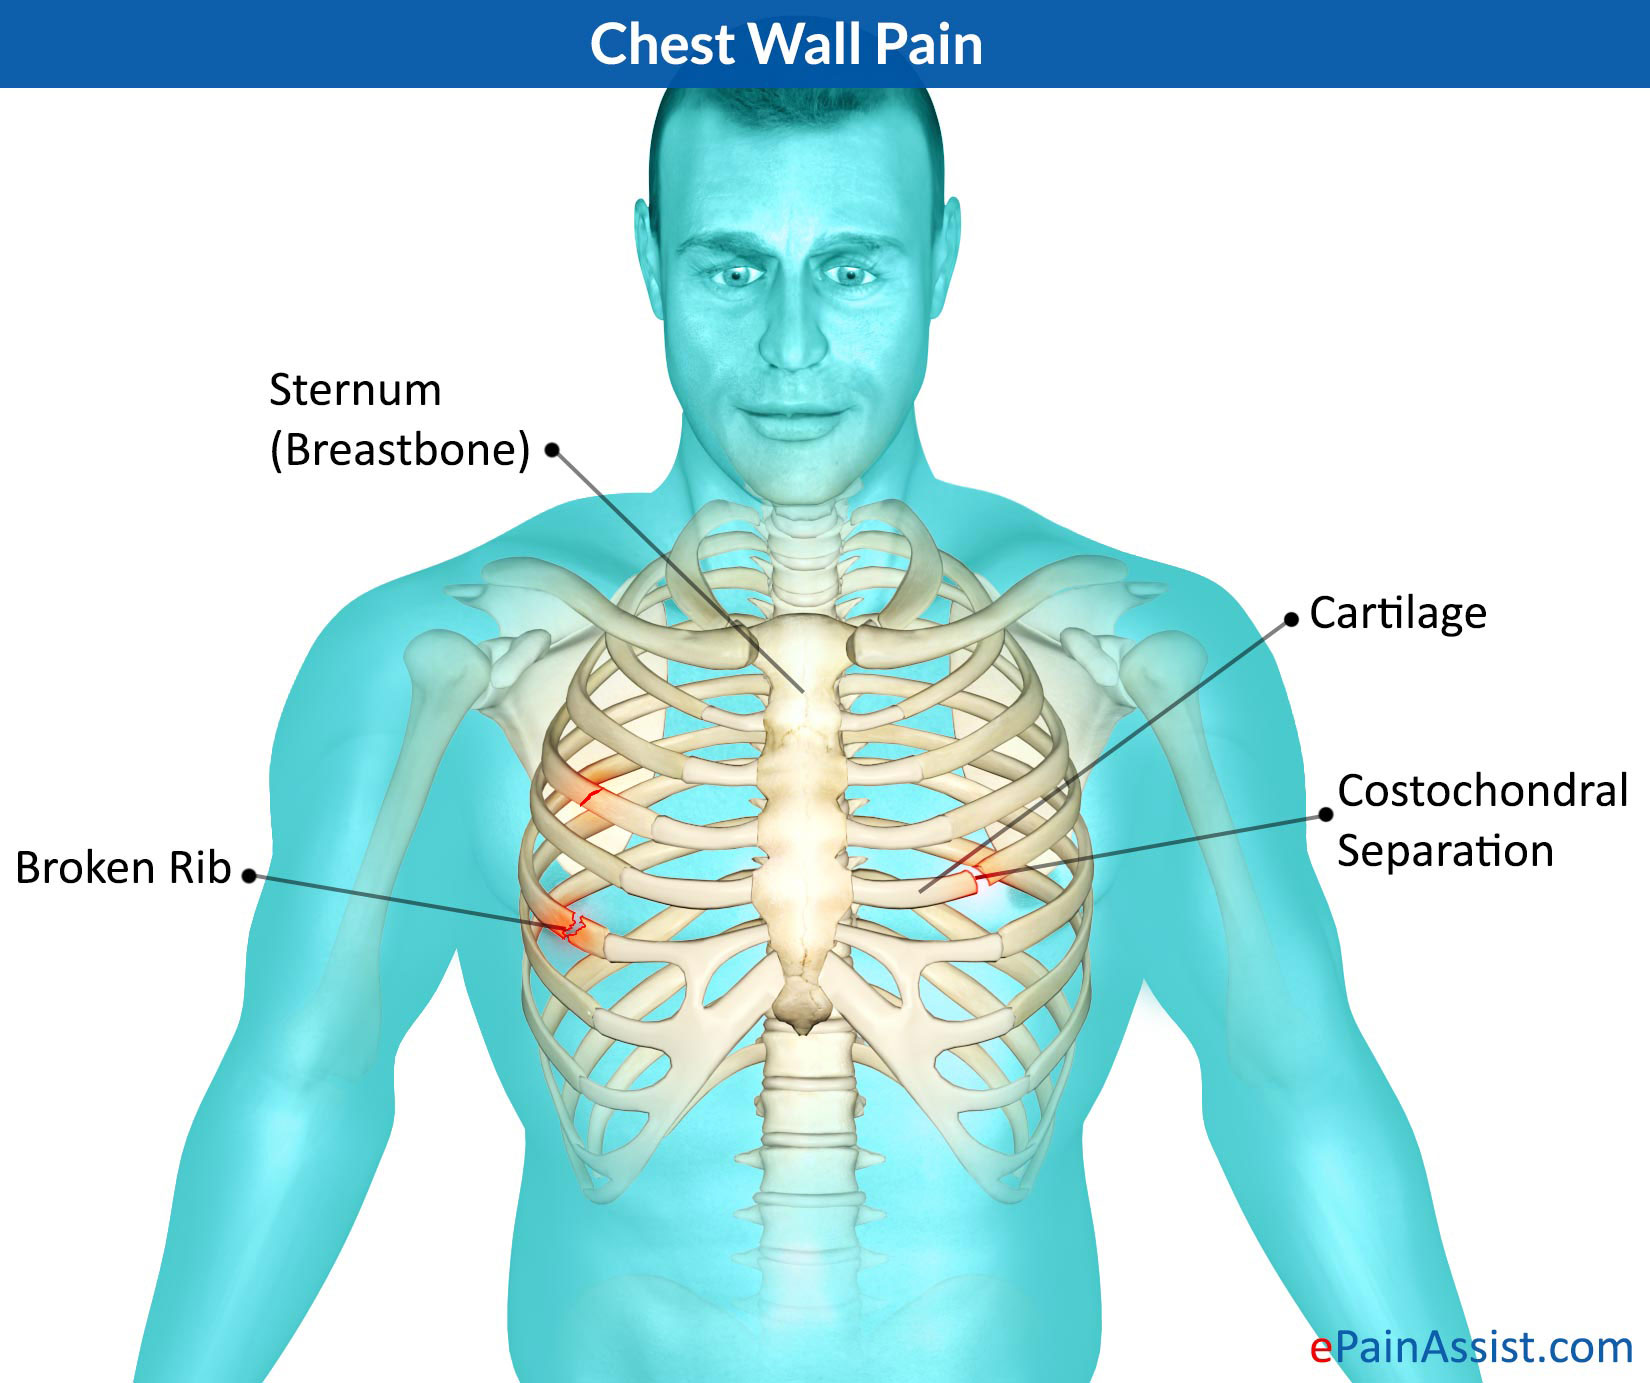 know what can cause chest wall pain and its treatment, Skeleton